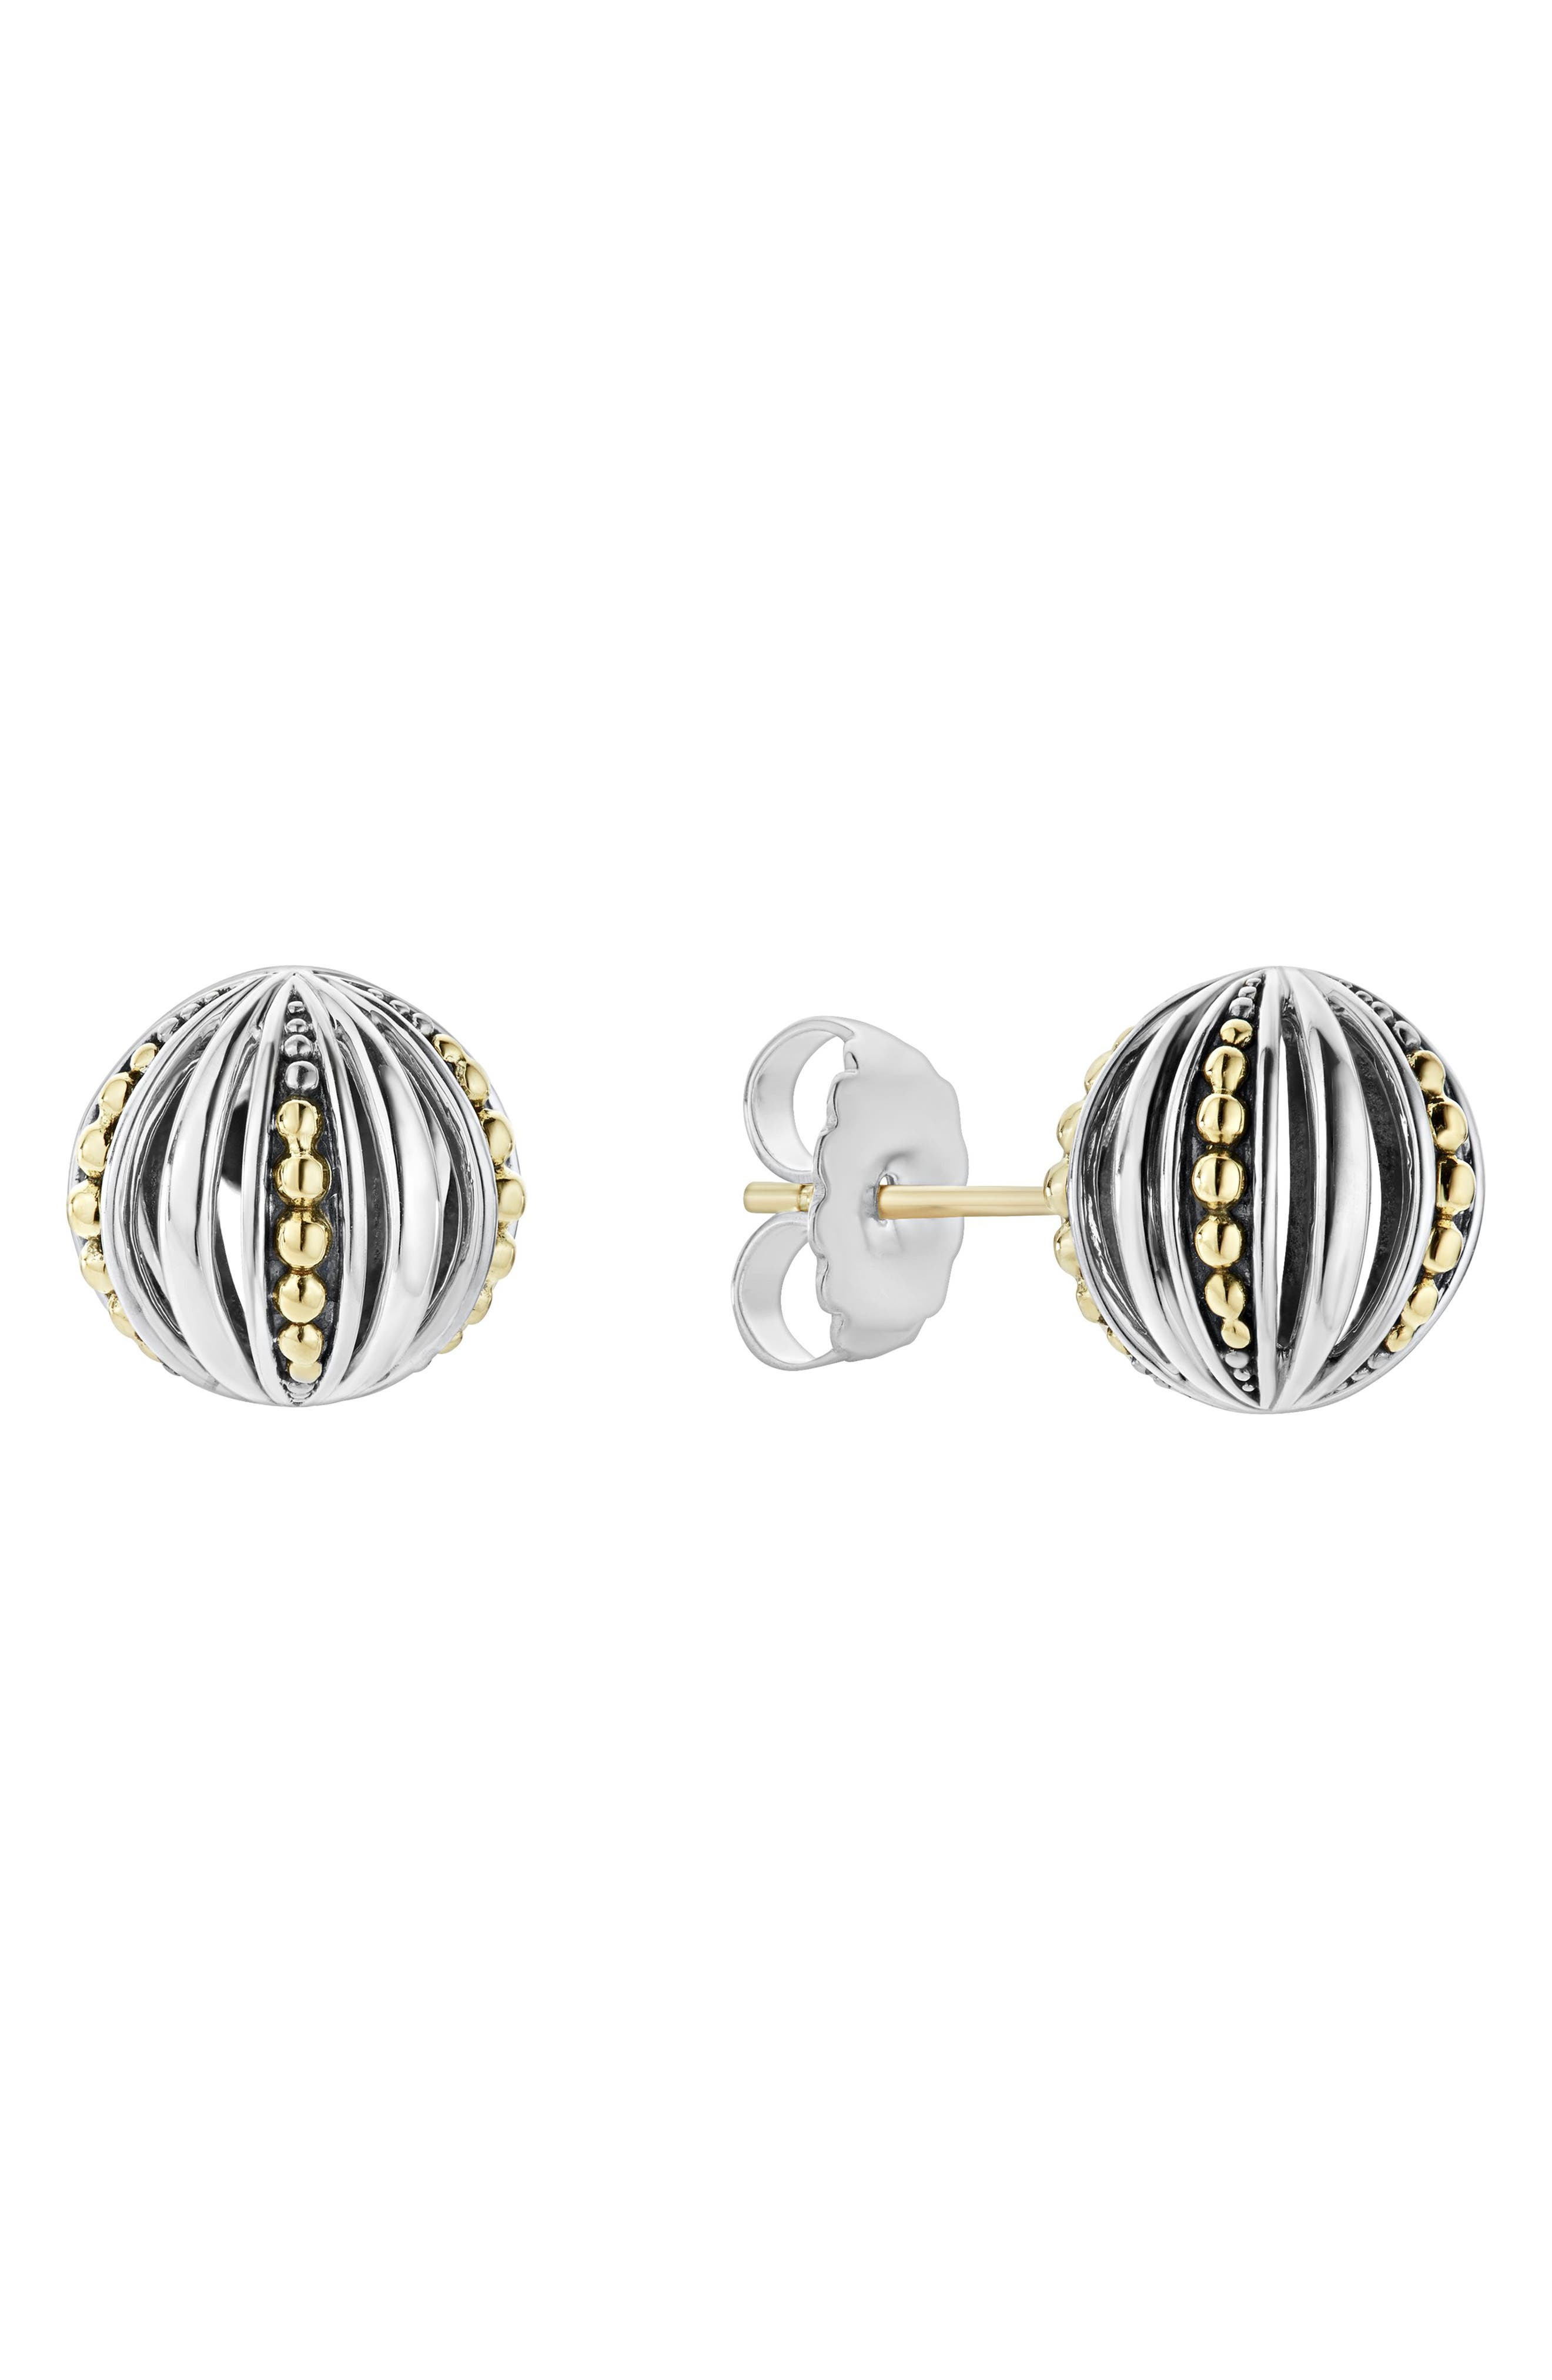 LAGOS Signature Gifts Beaded Ball Stud Earring